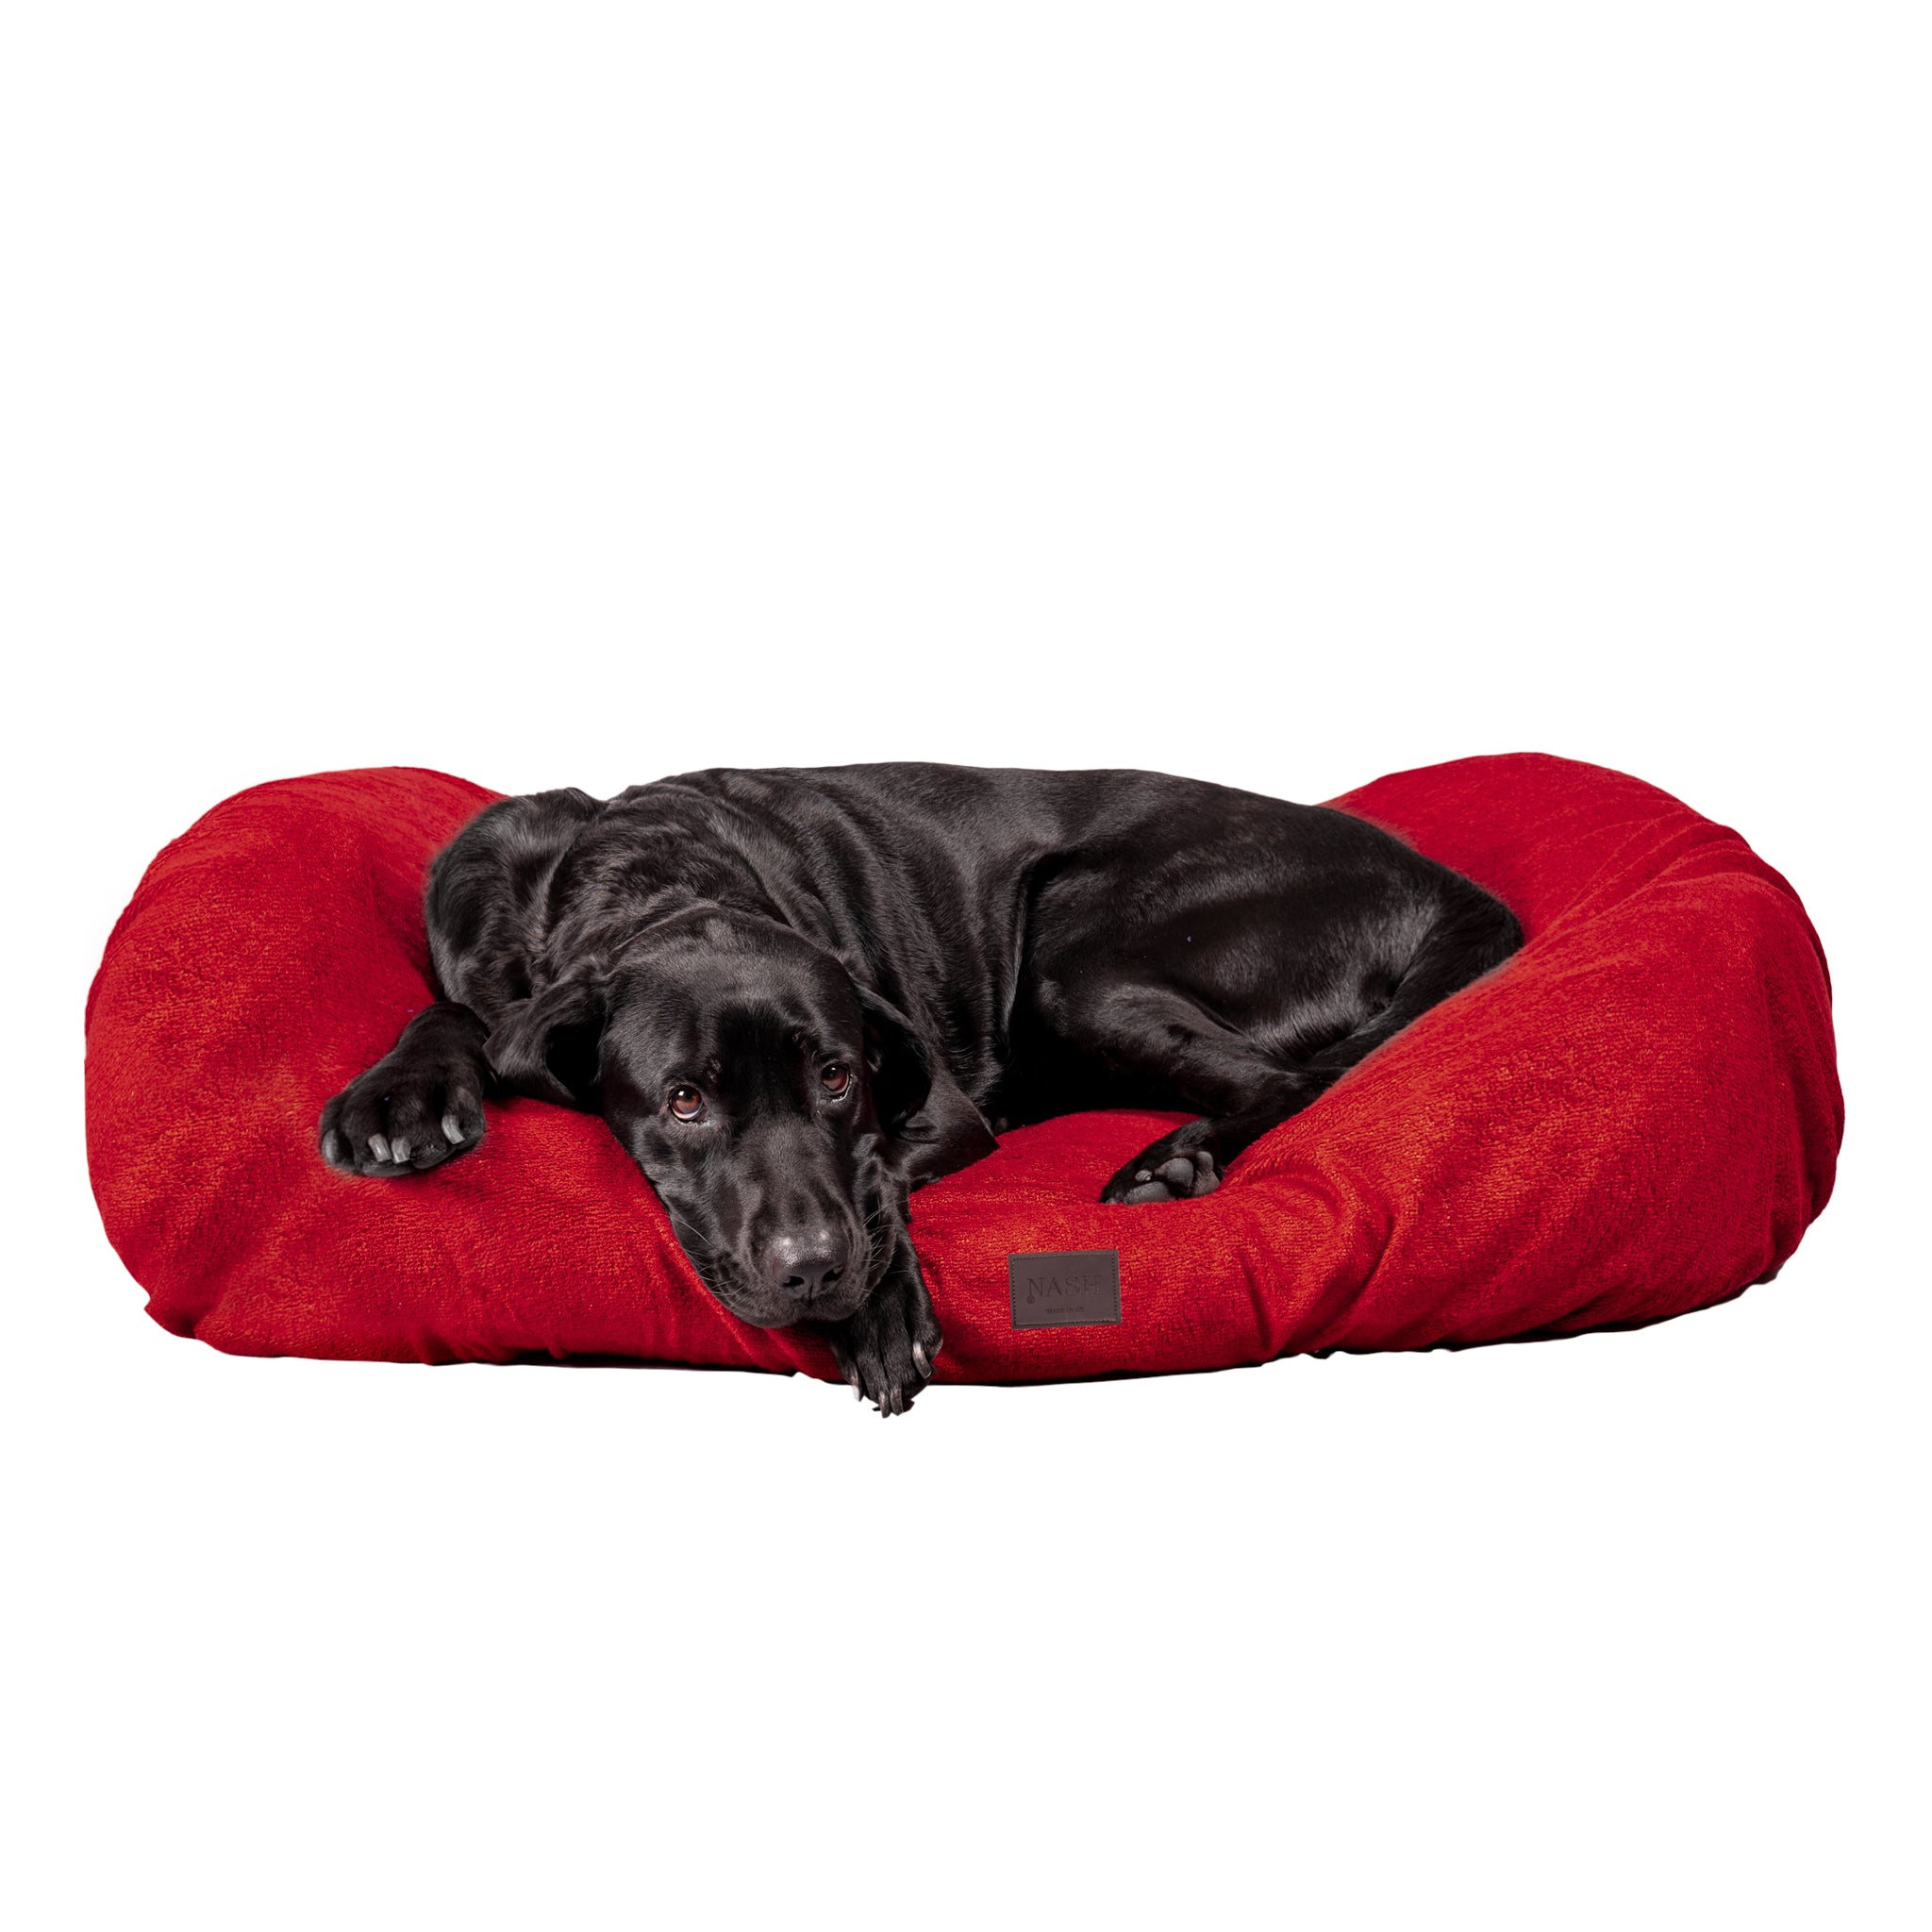 Bamboo Dog Bed Cover - Red - Shop Bamboo Dog Drying Coats, bed covers, drying mitts & throw Online!